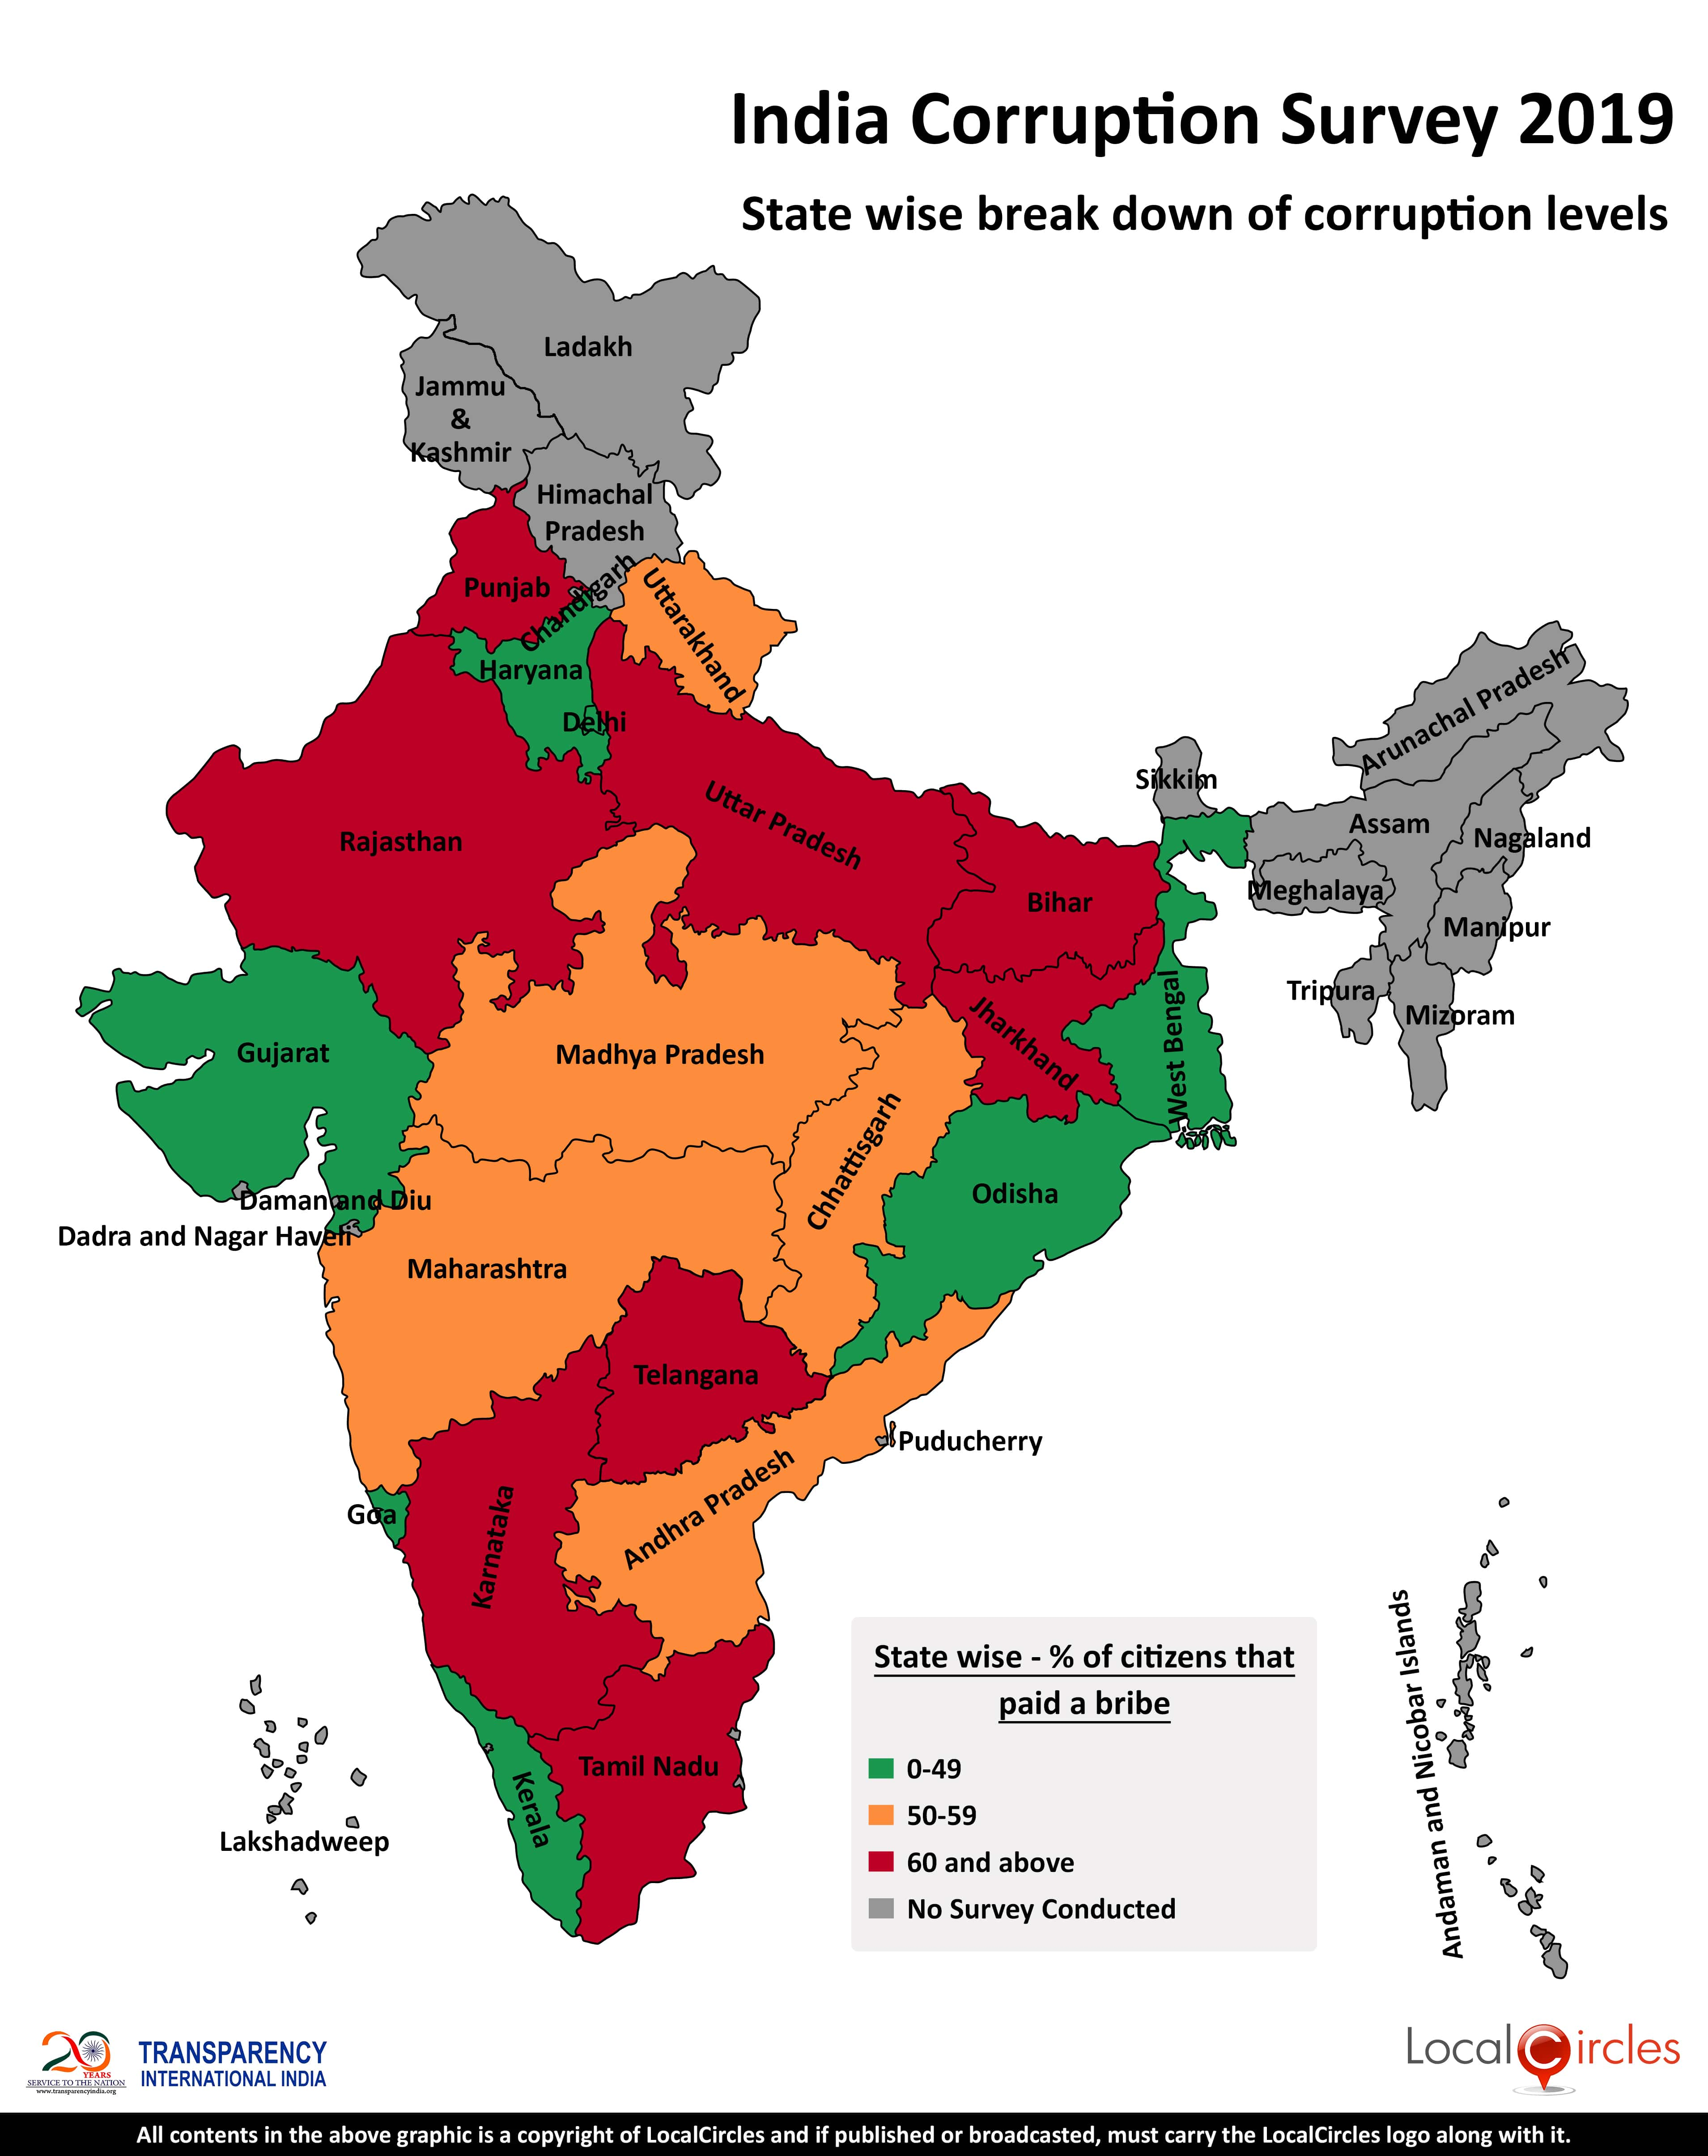 State-wise indicator of corruption levels